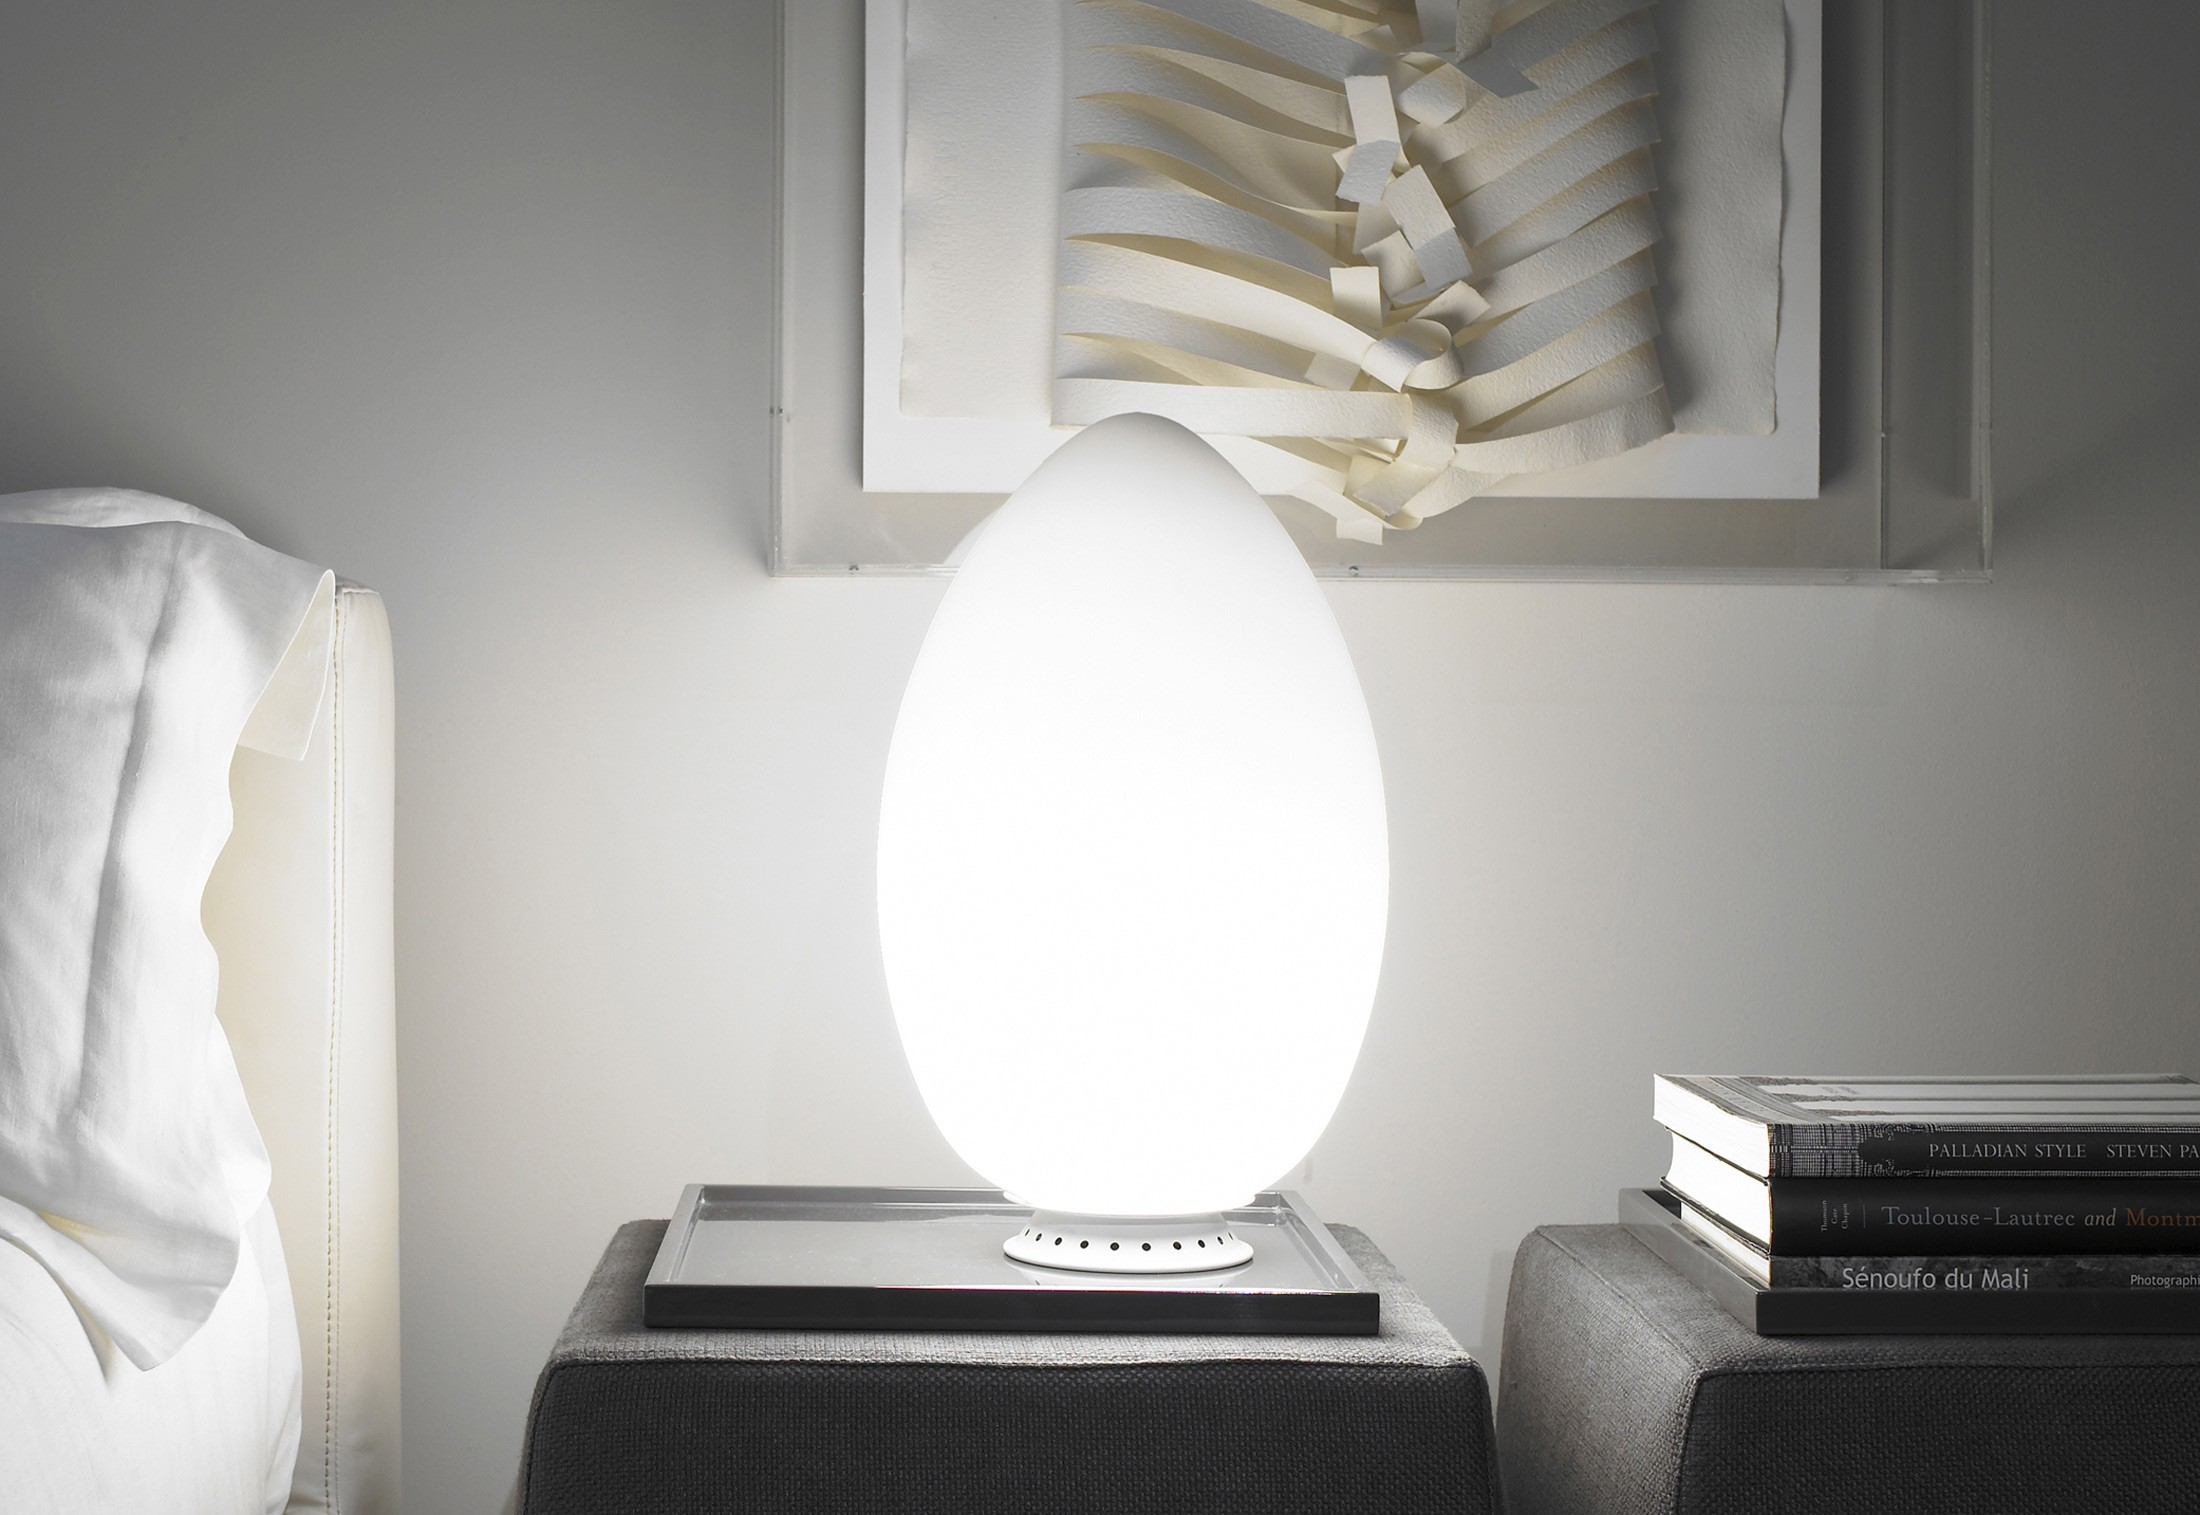 Best fontana arte images mesas table lamps and art